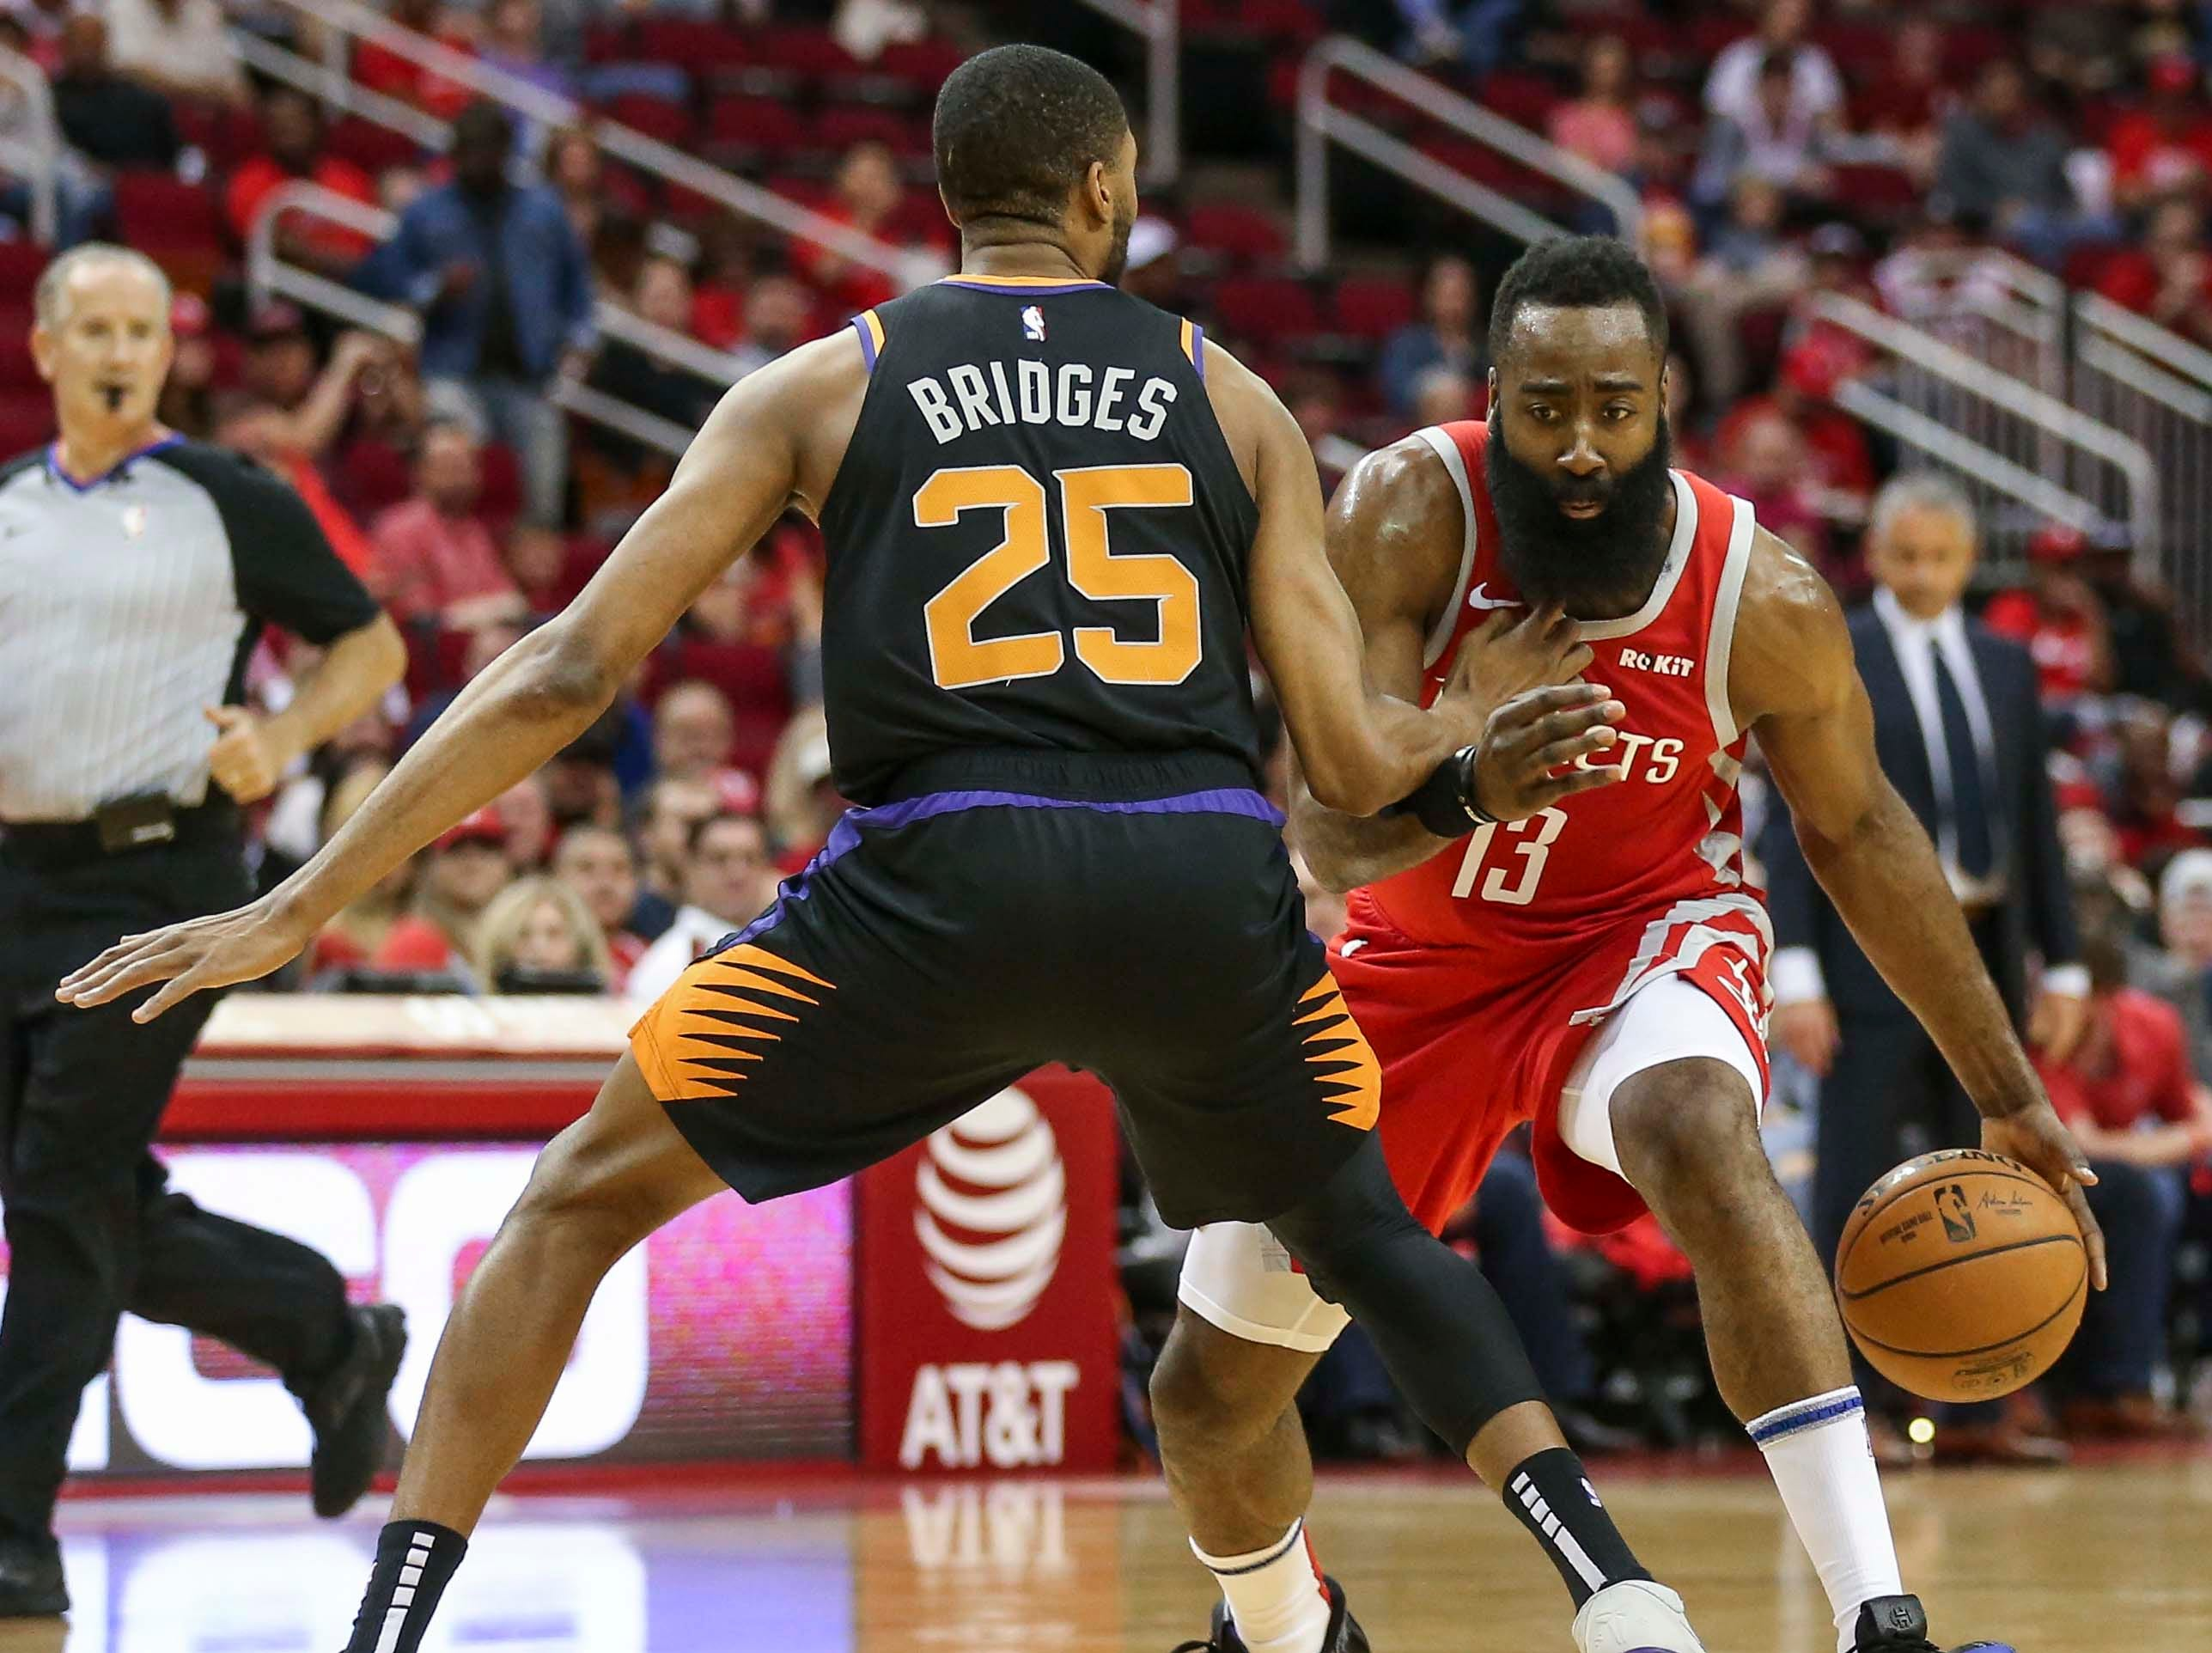 Apr 7, 2019; Houston, TX, USA; Phoenix Suns forward Mikal Bridges (25) defends against Houston Rockets guard James Harden (13) during the first quarter at Toyota Center. Mandatory Credit: Troy Taormina-USA TODAY Sports